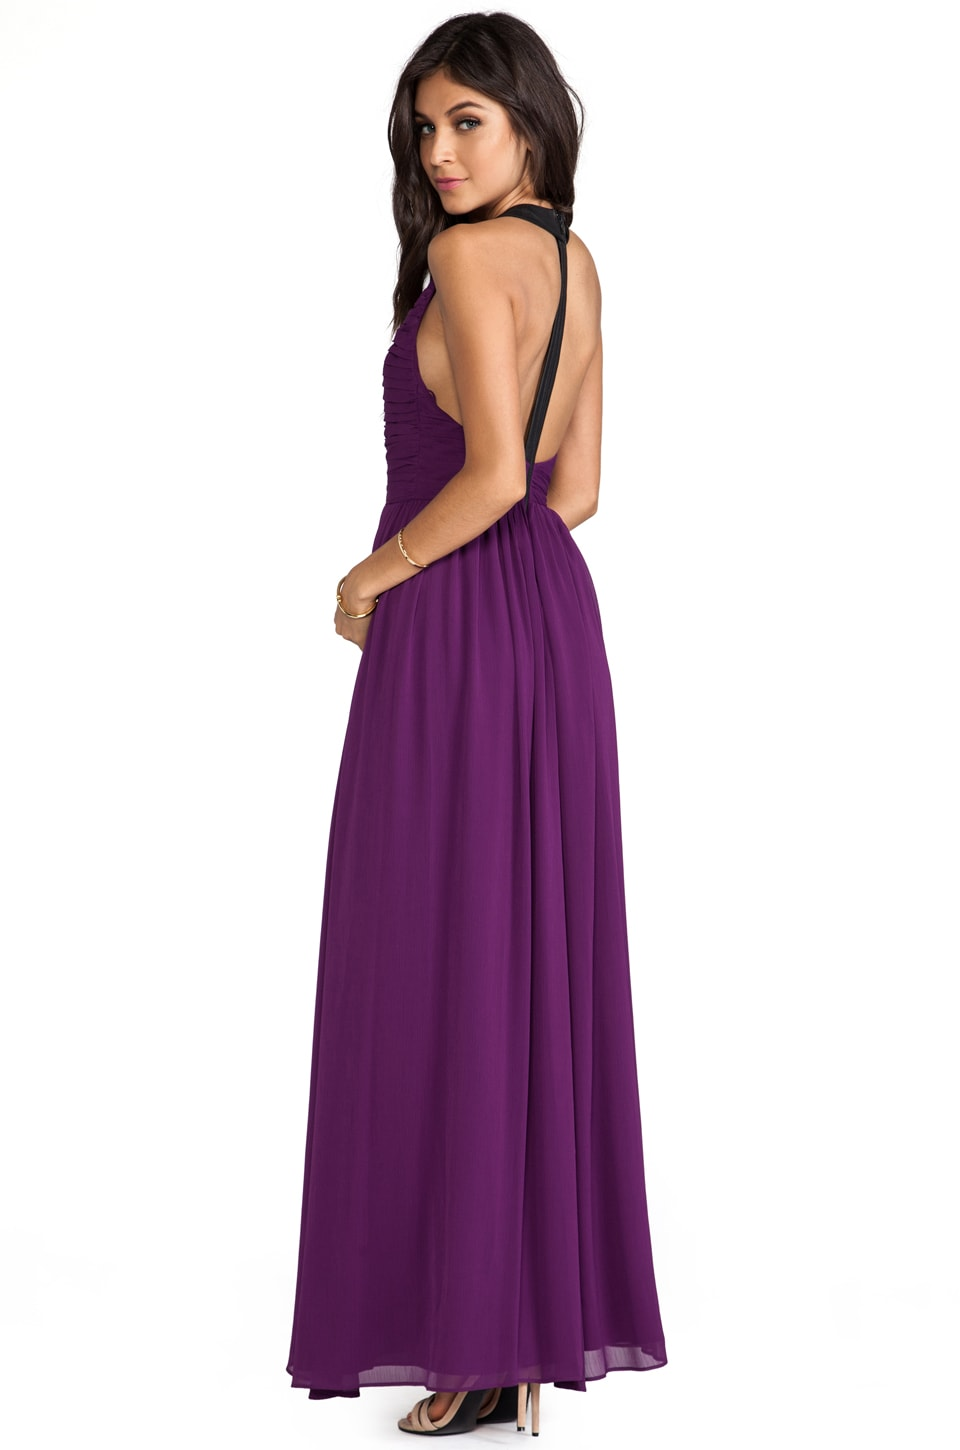 Alice + Olivia Runie Ruched Bodice Leather T-Back Maxi Dress in Electric Plum